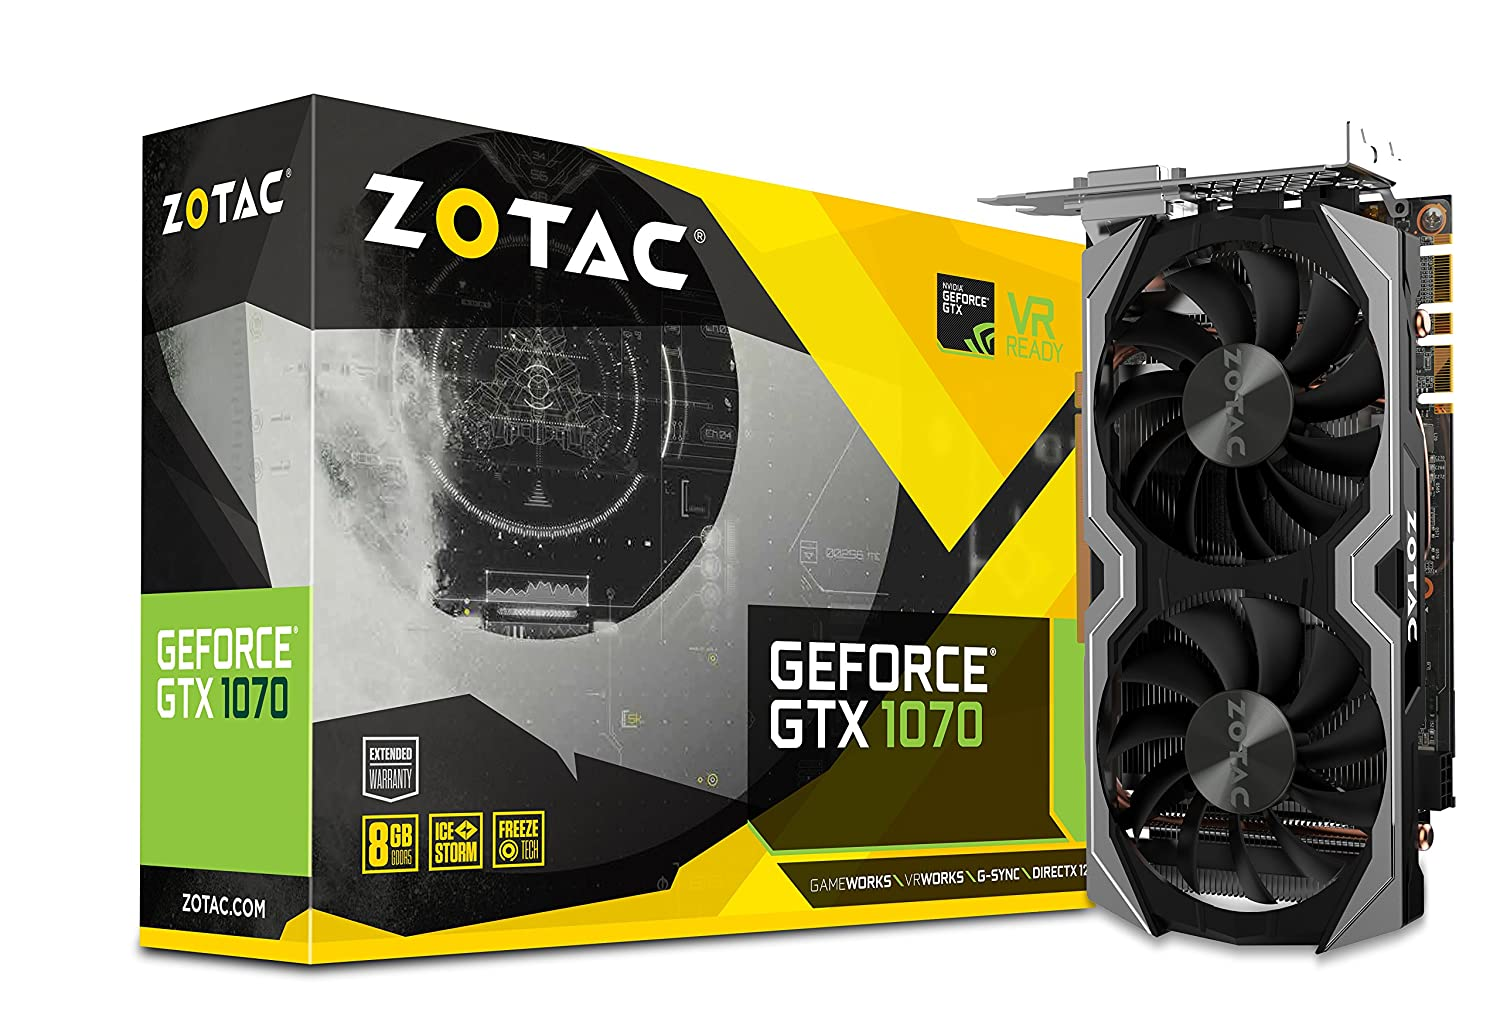 Zotac GeForce GTX 1080 Mini Black Friday Deal